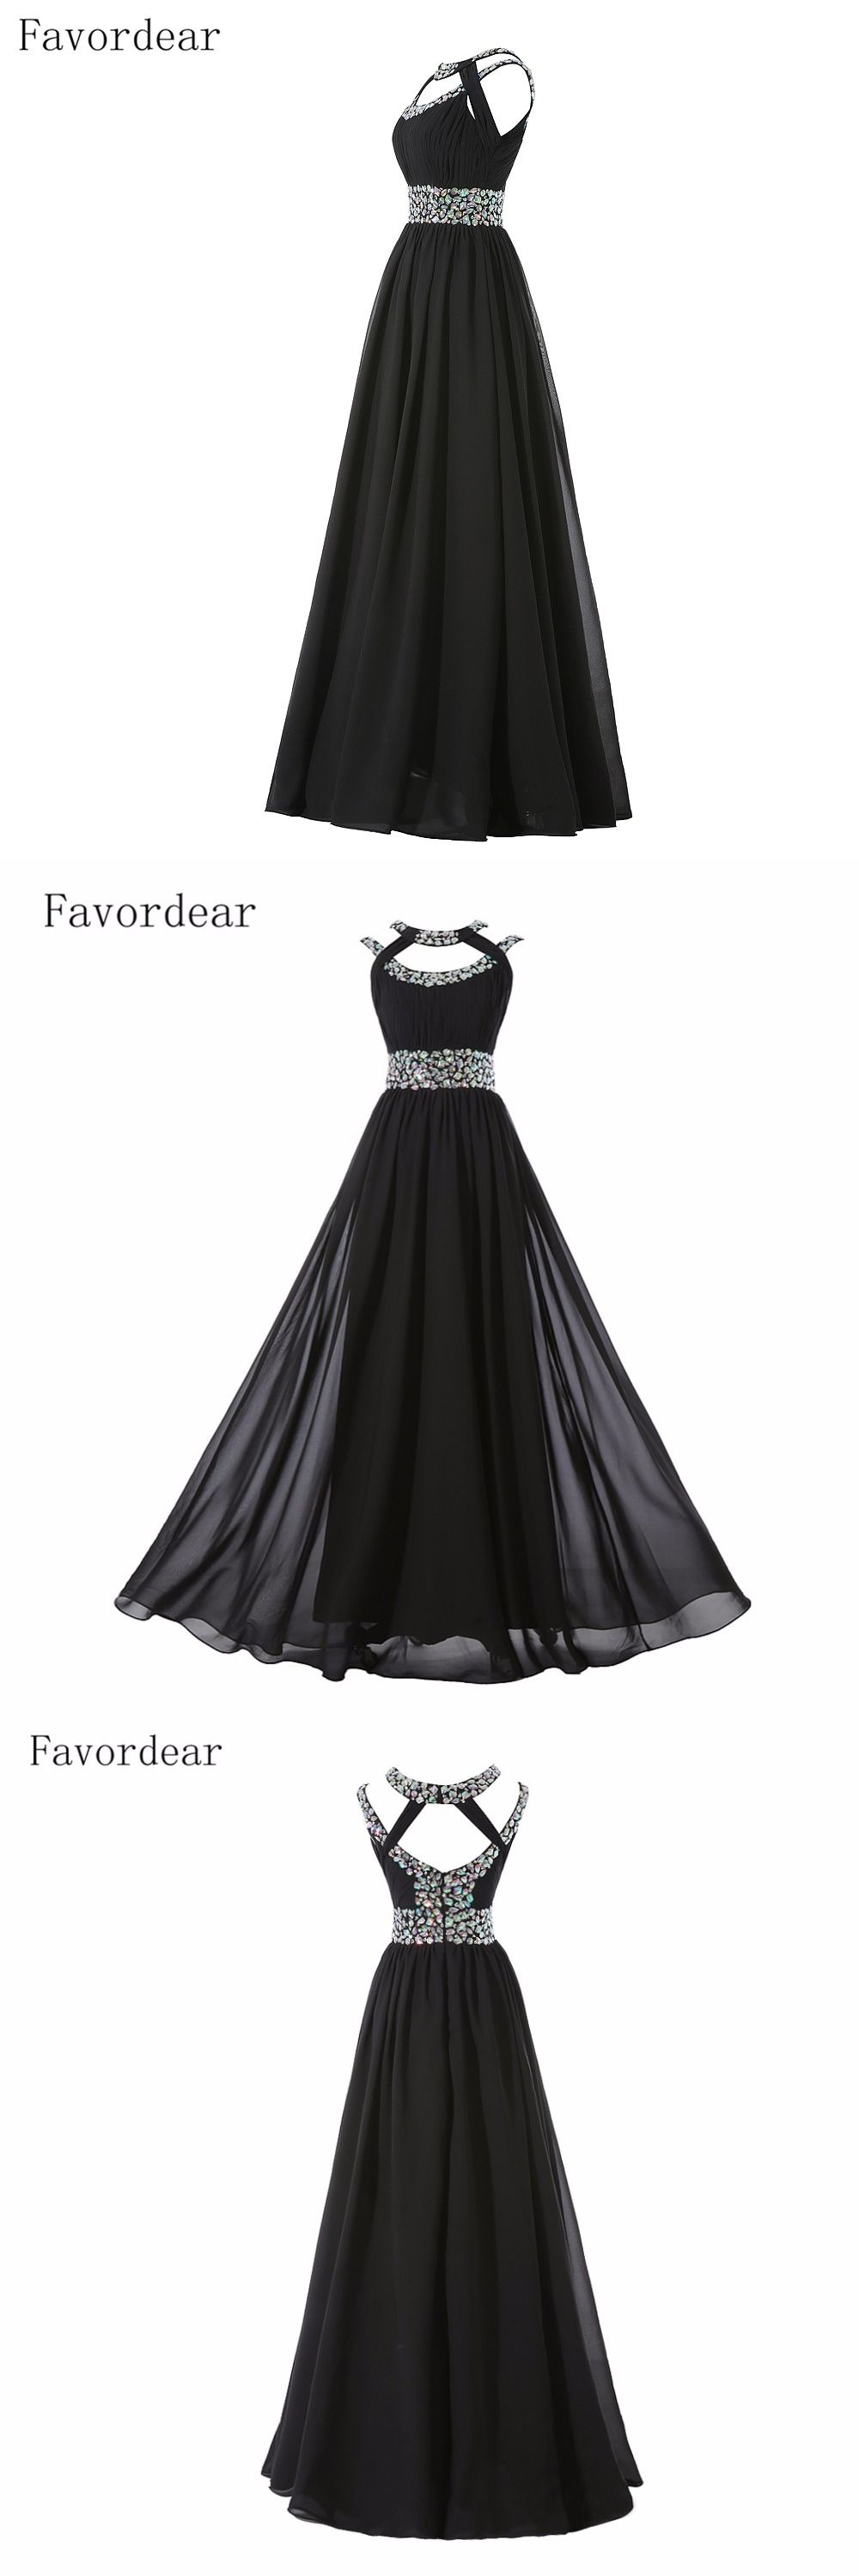 Favordear rhinestone beading royal blue evening dress long